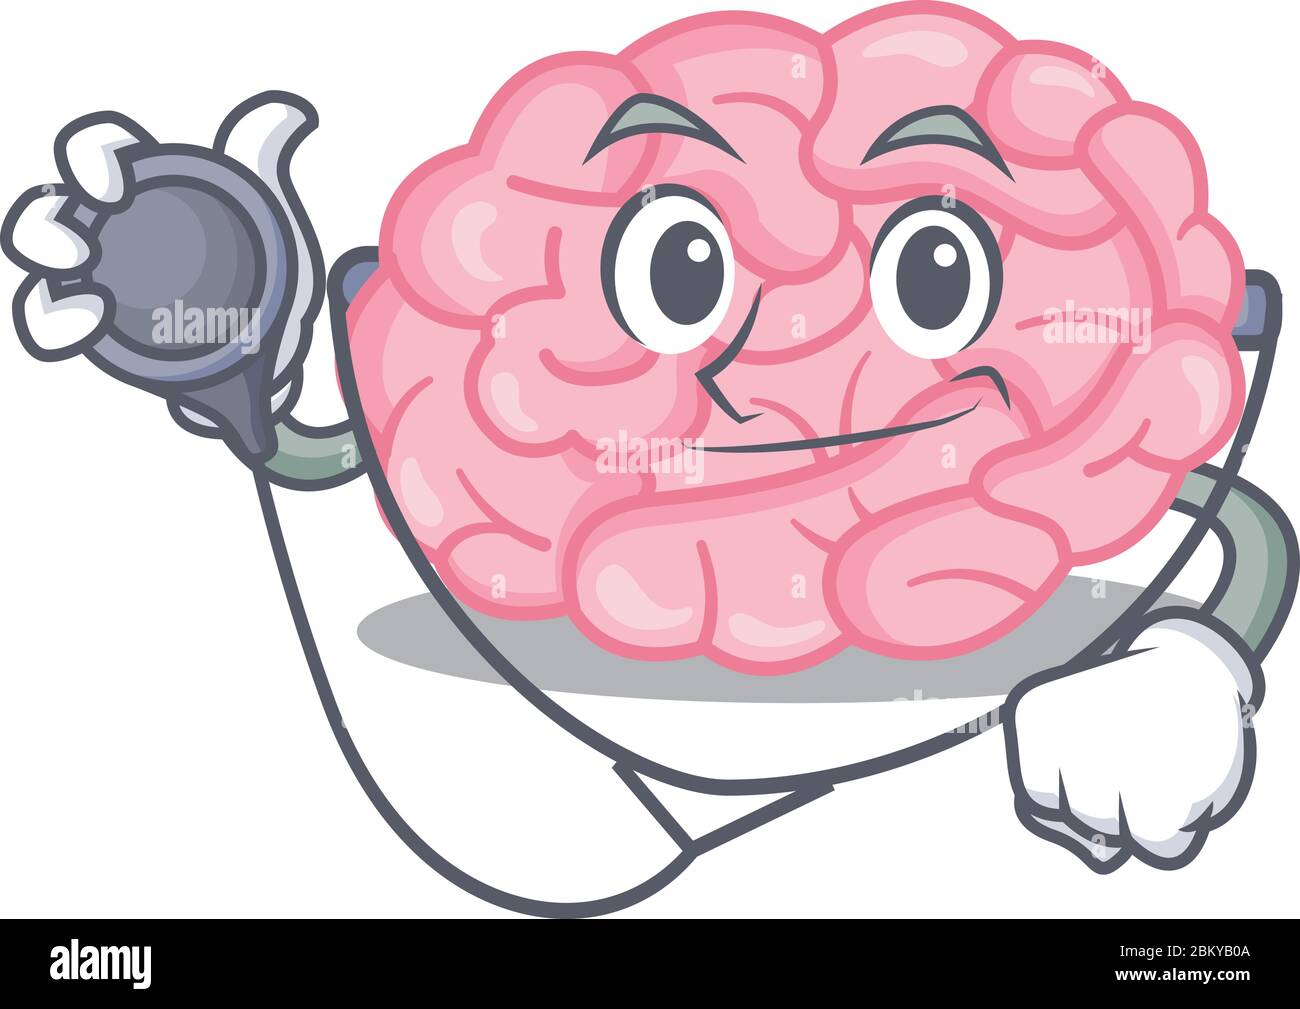 Cartoon Brain High Resolution Stock Photography And Images Alamy